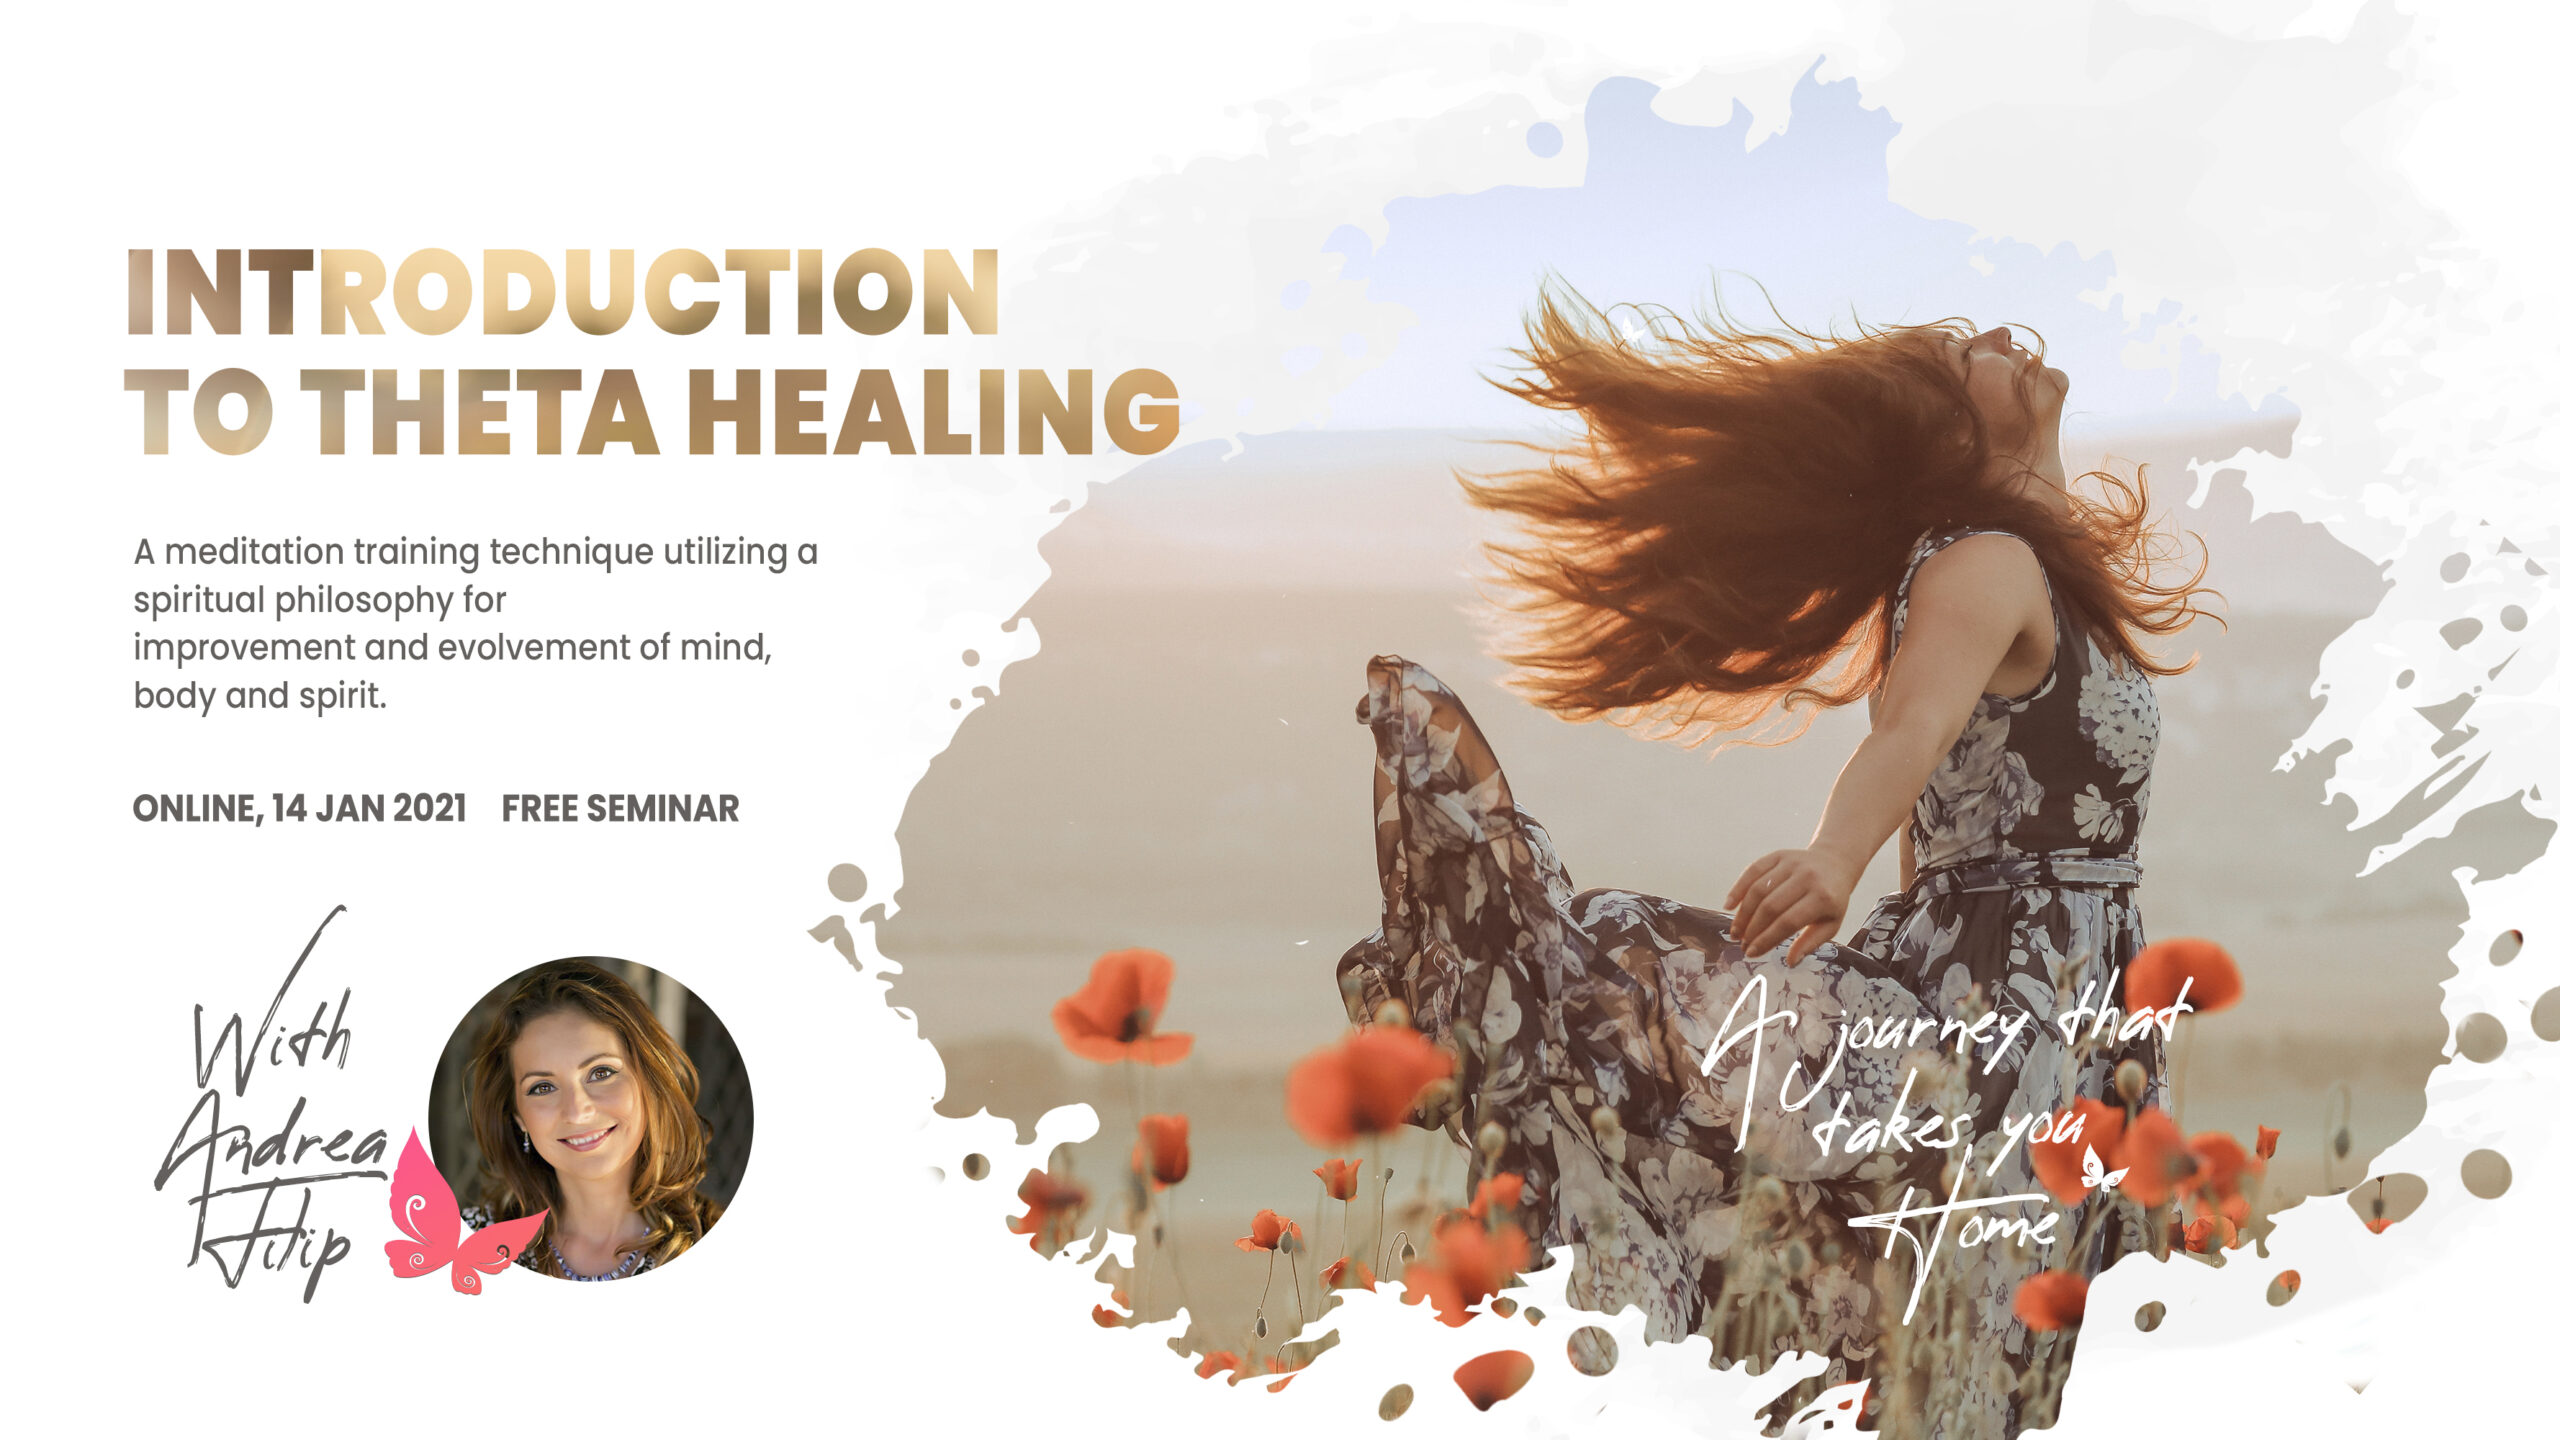 Intro to ThetaHealing with Andrea Filip - Girl